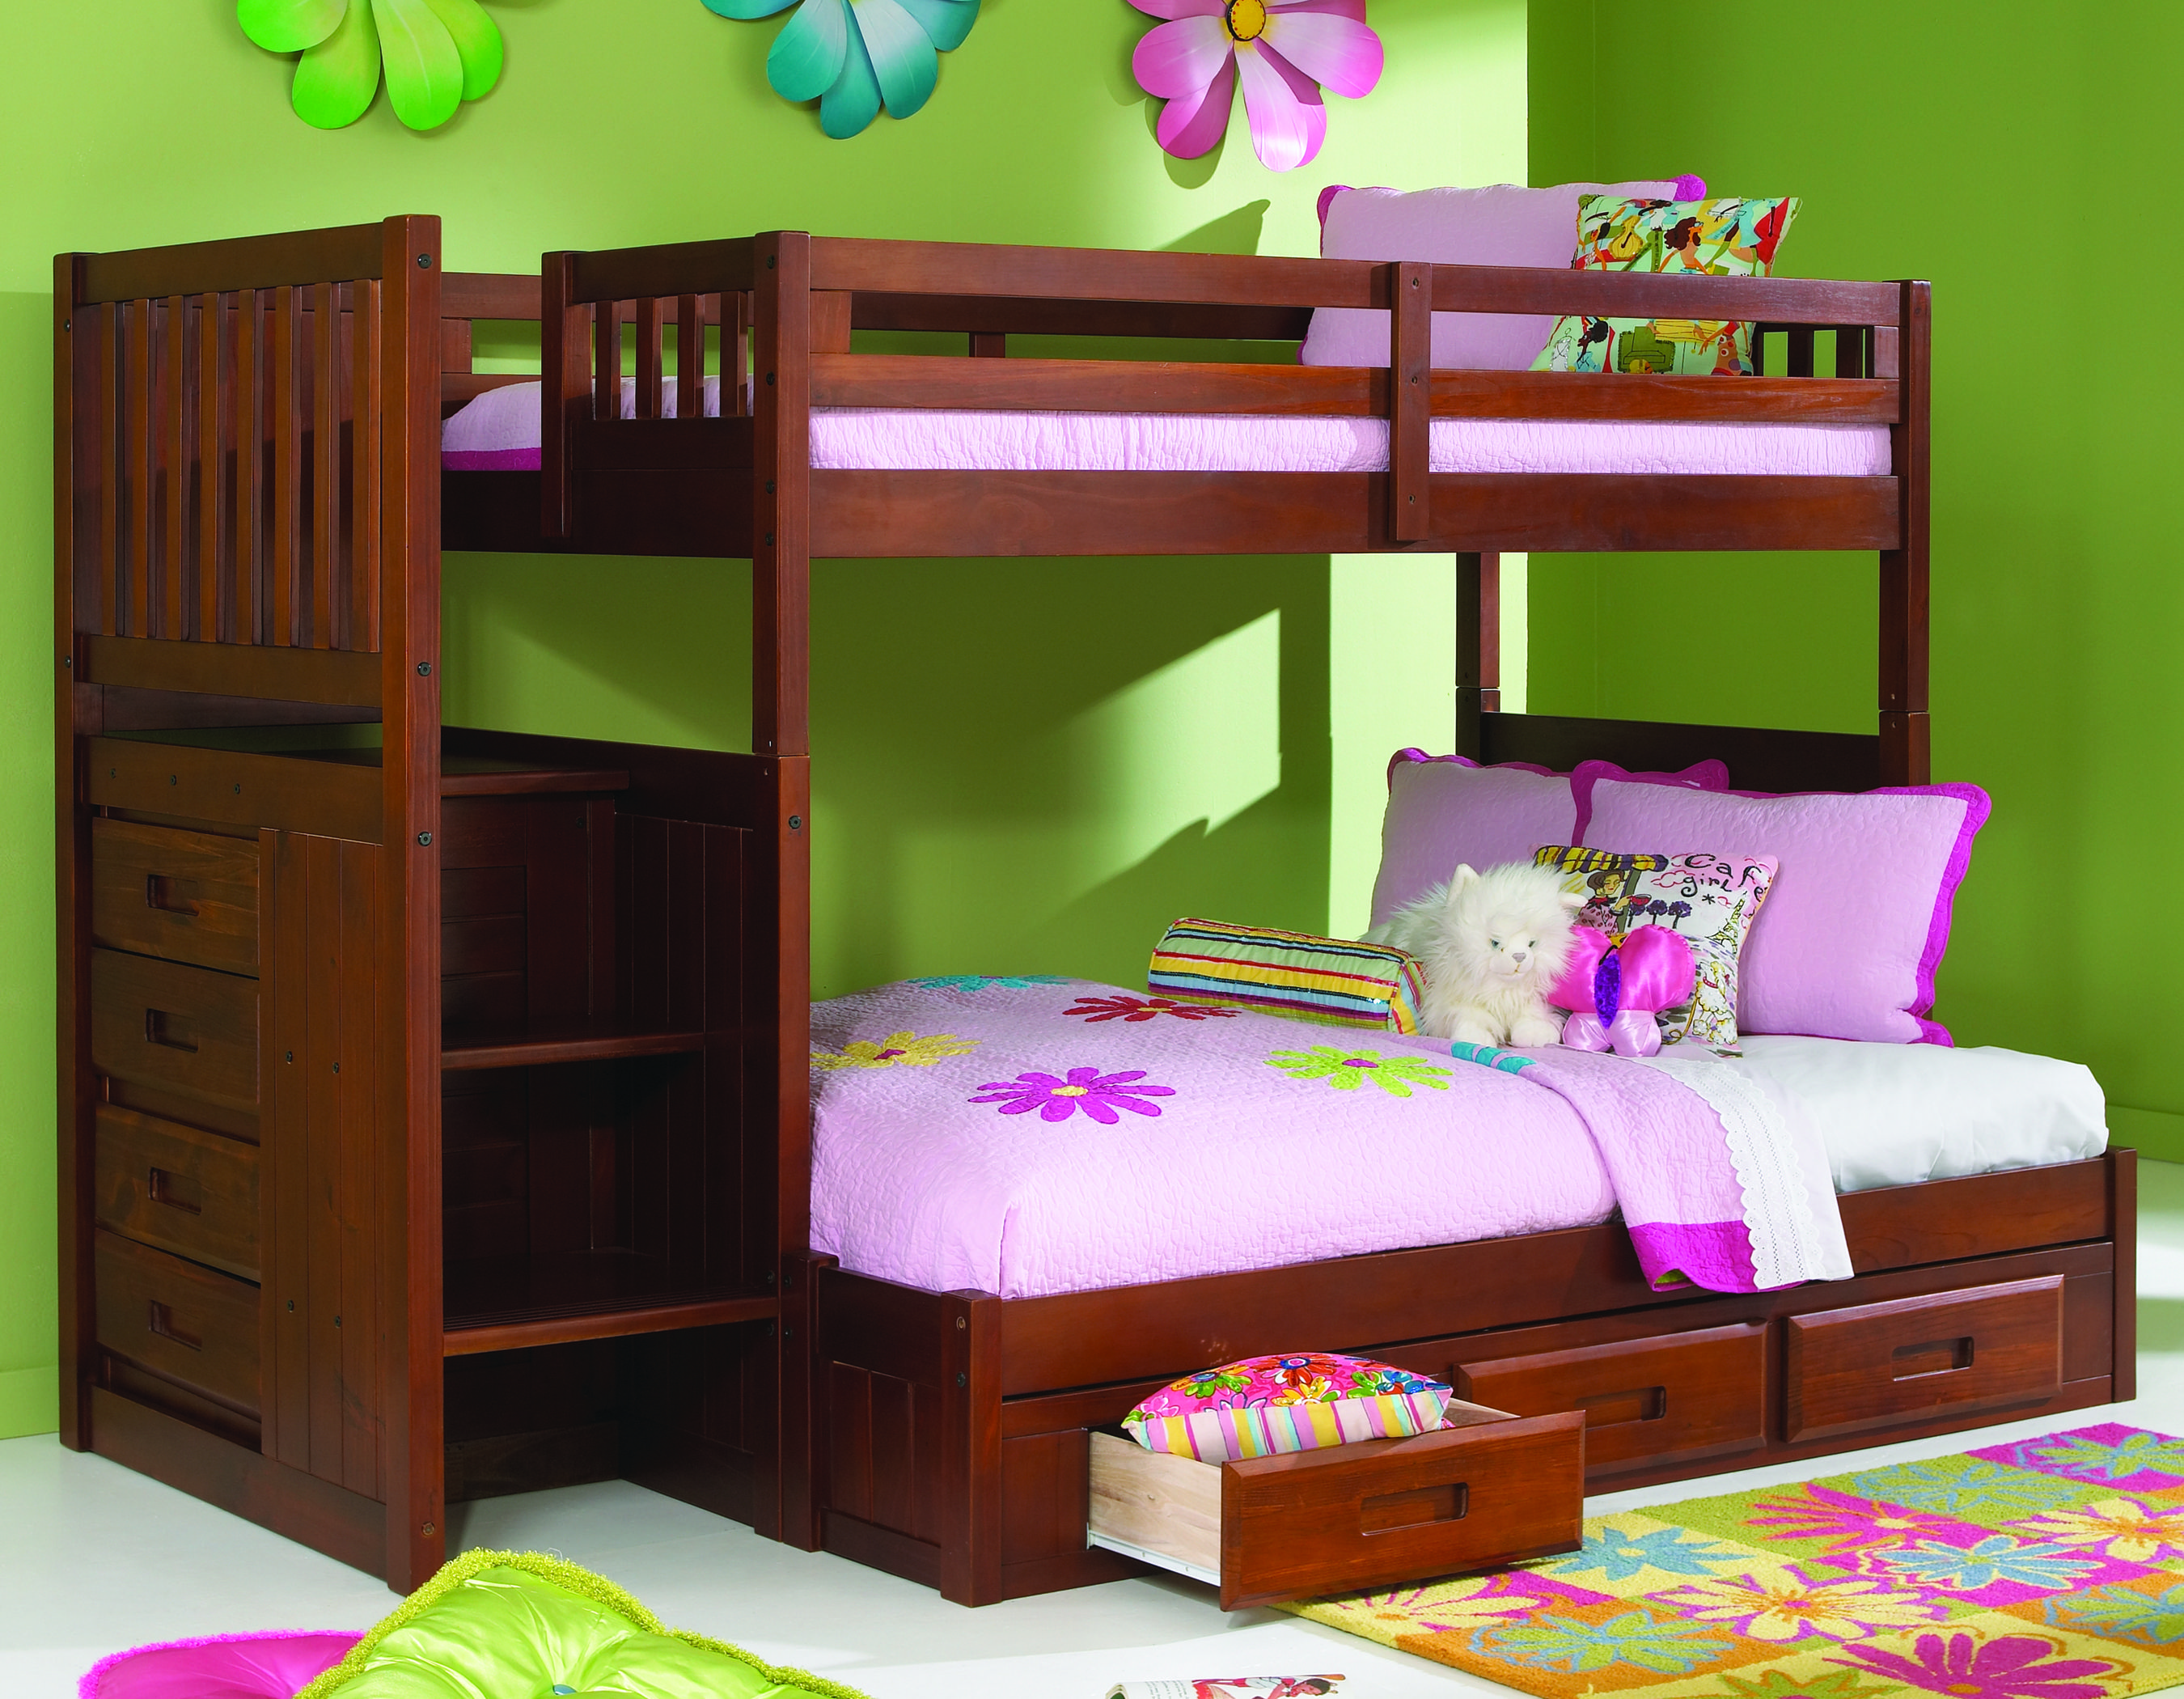 Quite Style Bunk Bed Design Idea For Teenage Girl with